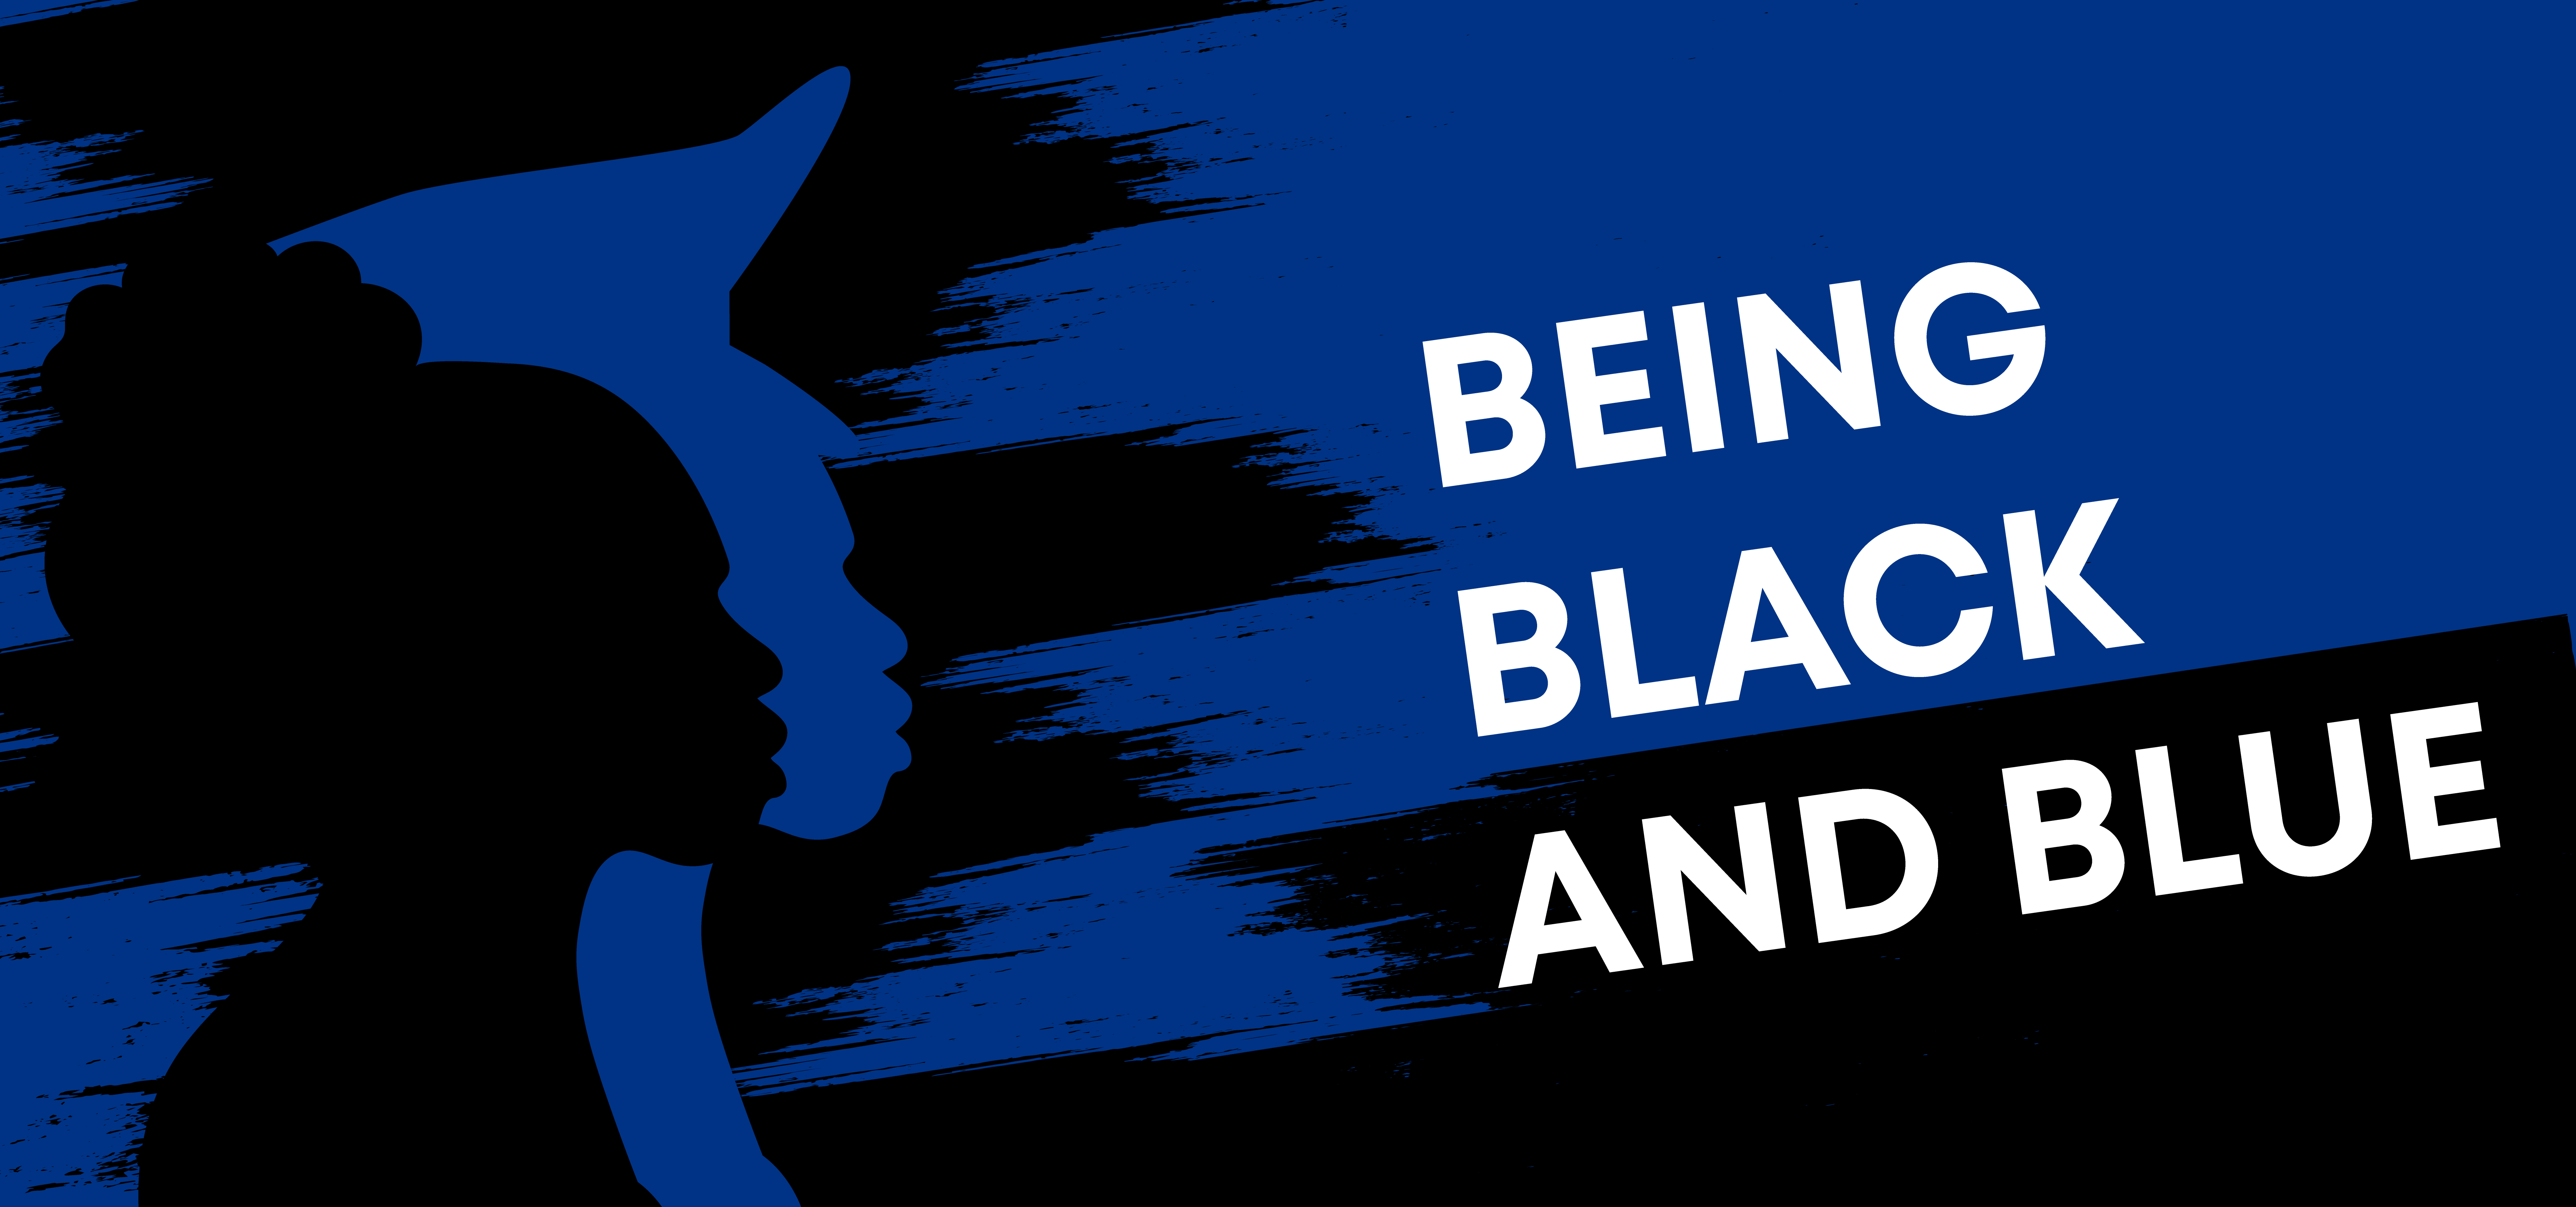 Being Black and Blue logo